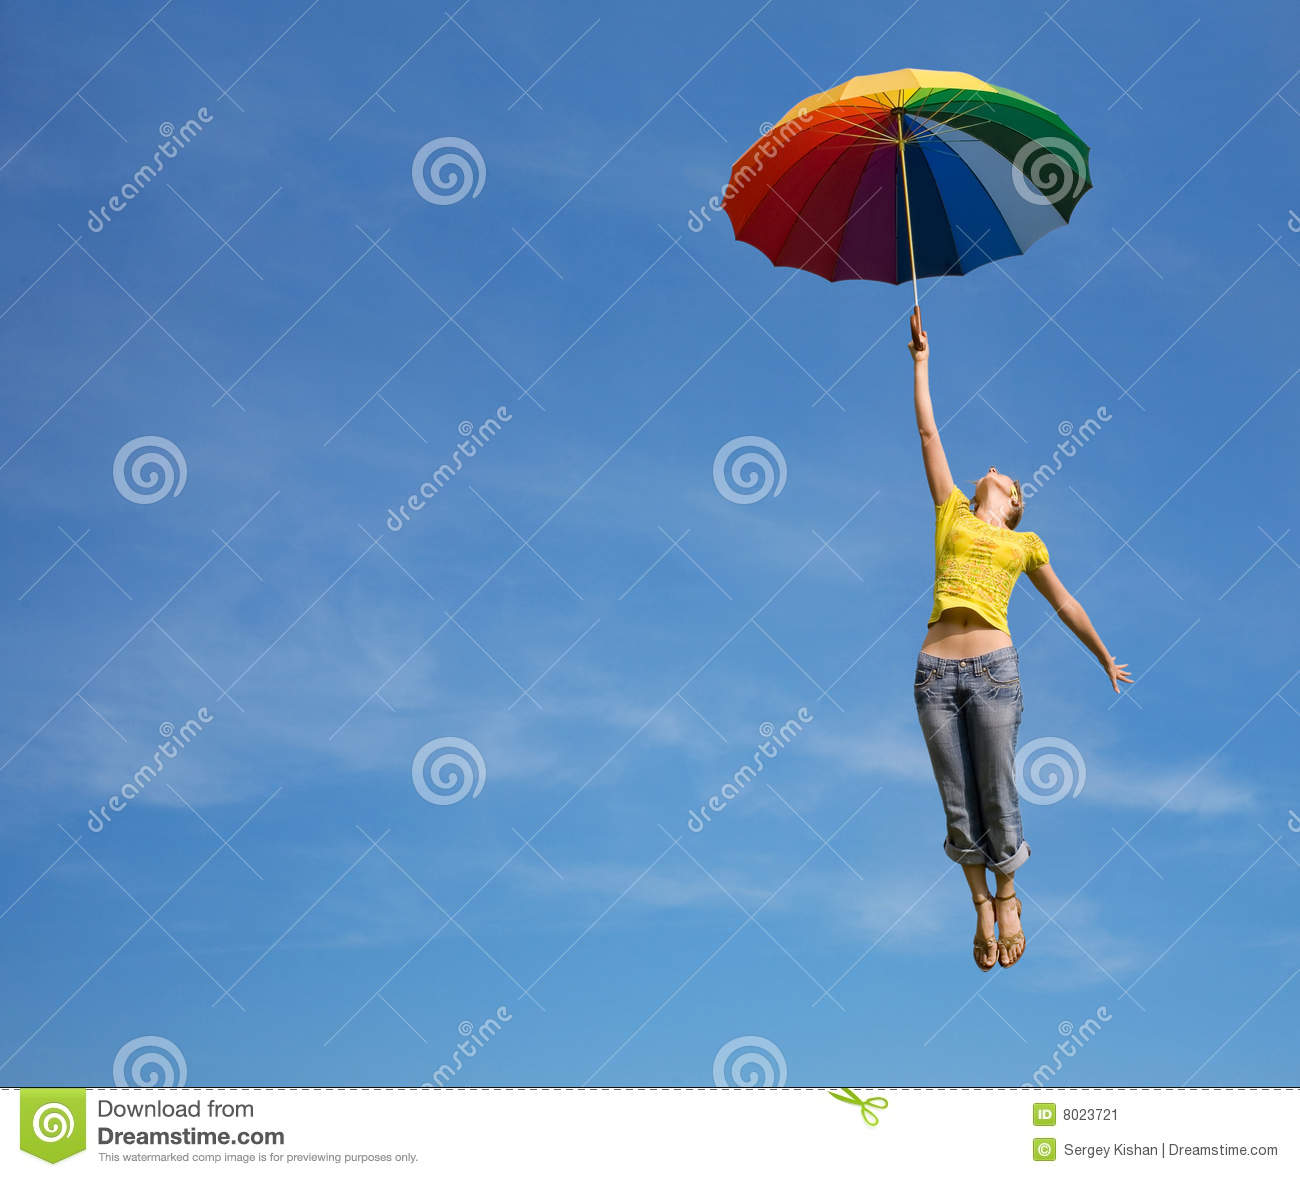 Patio Umbrella Flying Away: Flying Girl With Colorful Umbrella In The Blue Blu Stock